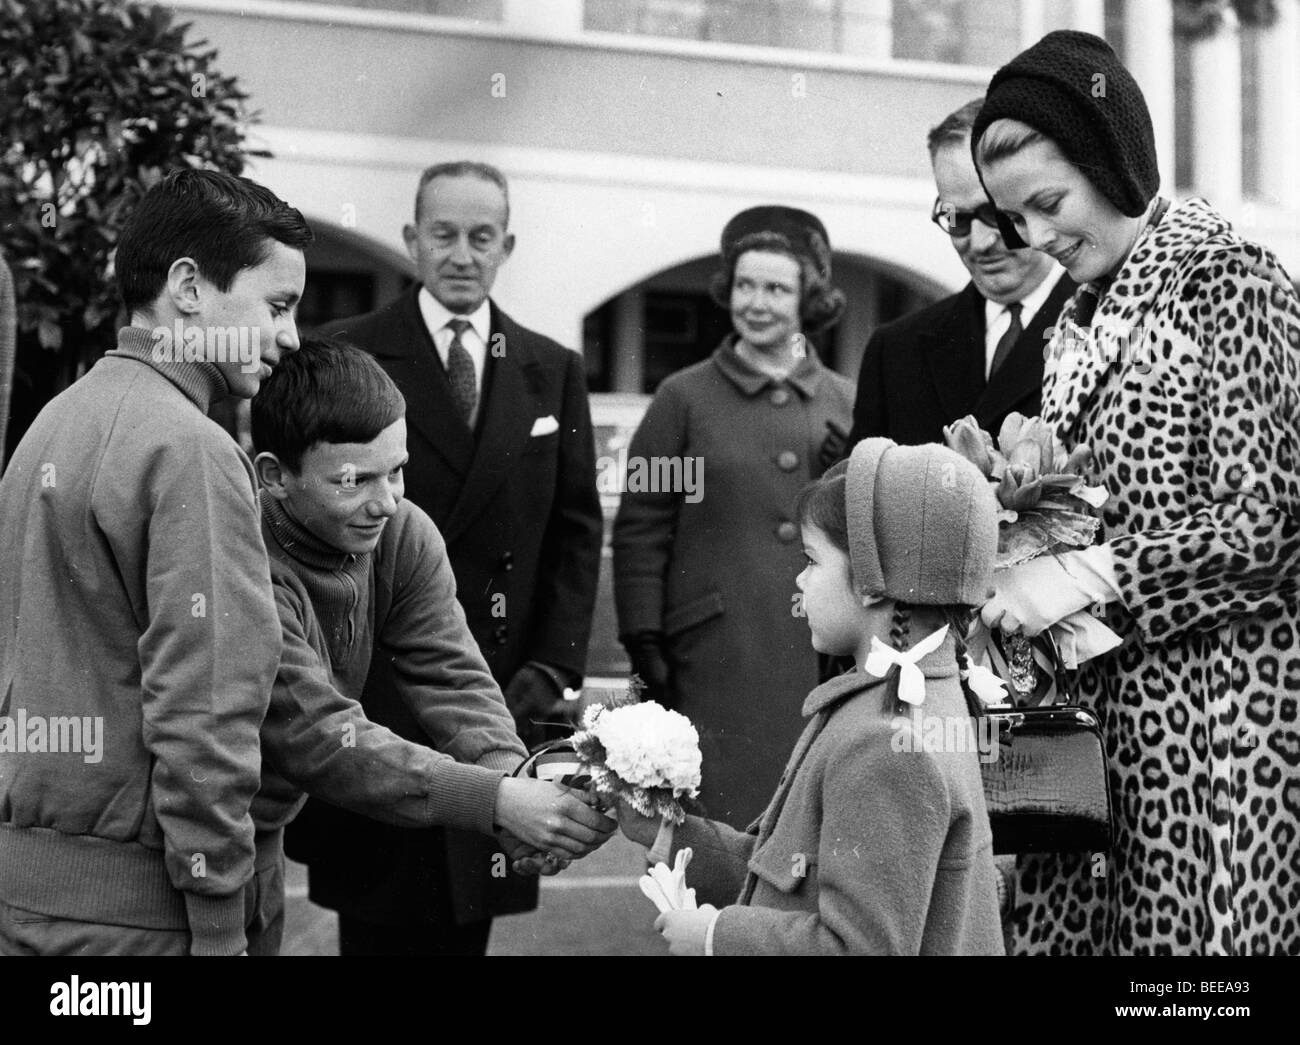 Grace Kelly, Princess of Monaco, watches as her daughter Caroline, Princess of Hanover, is presented with flowers. Stock Photo